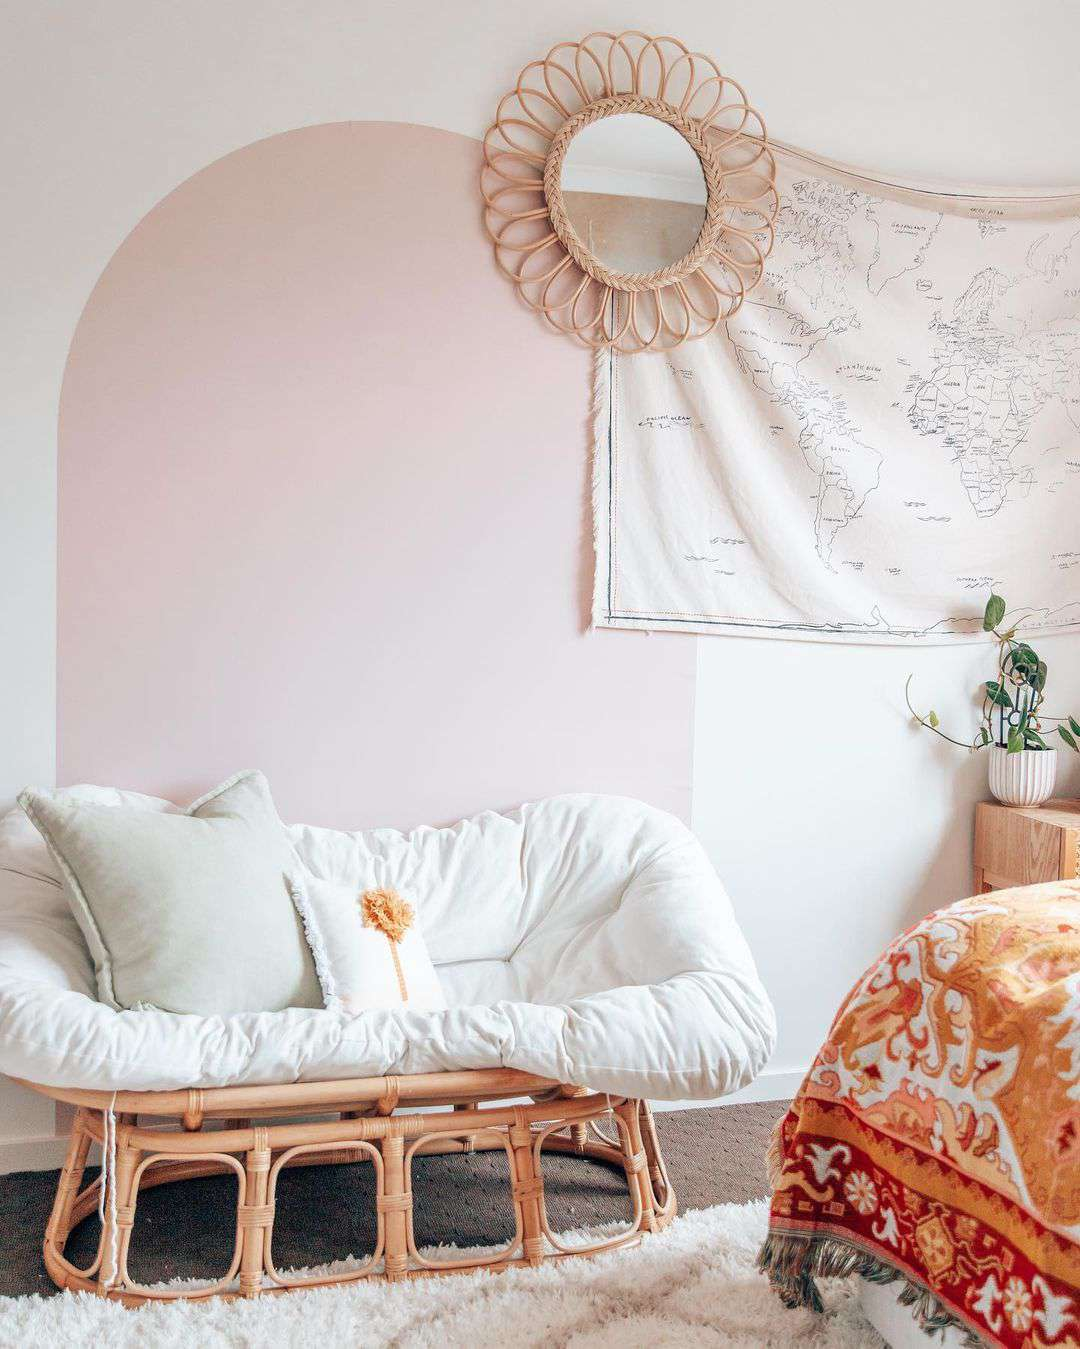 Pink painted arch on wall.